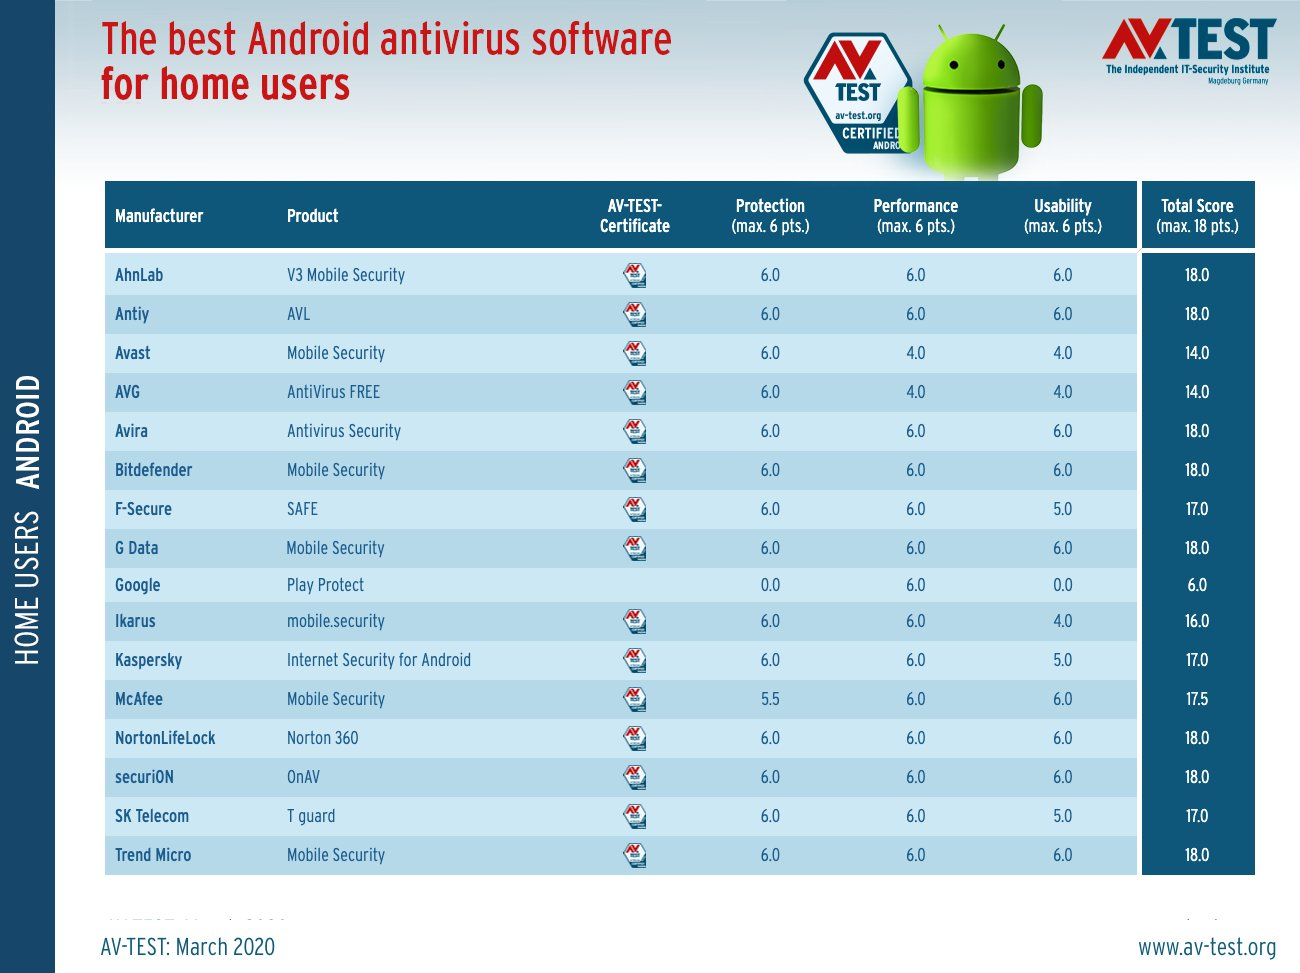 The best Android antivirus apps in 2020